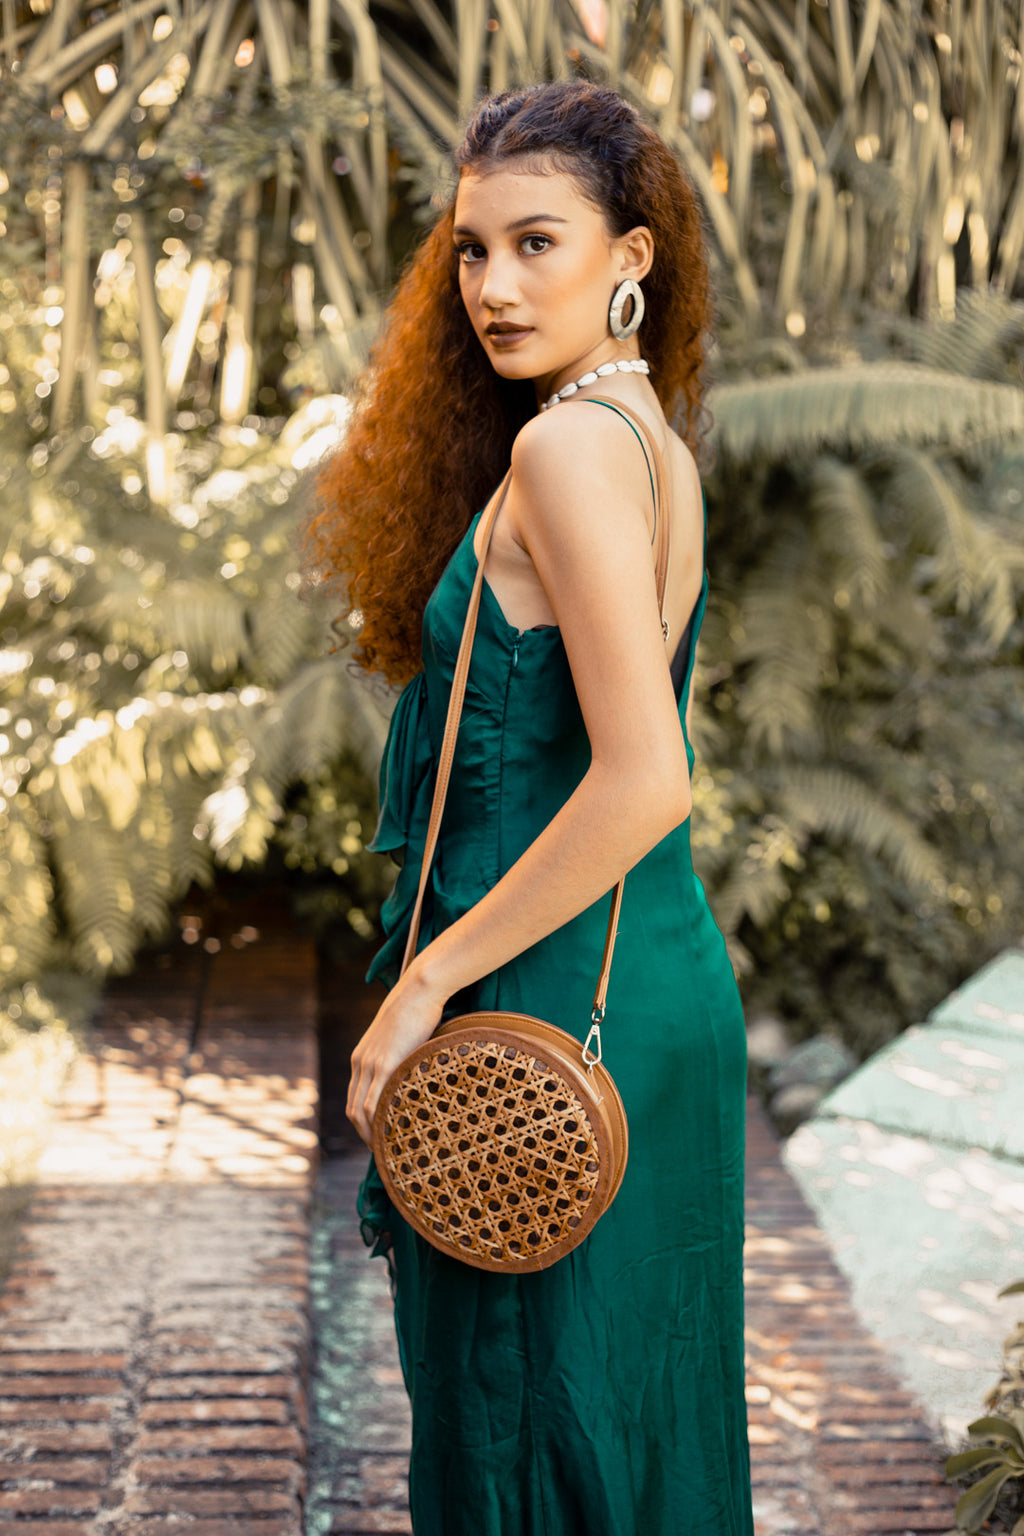 Maya Solihiya Round Bag in Brown - Island Girl